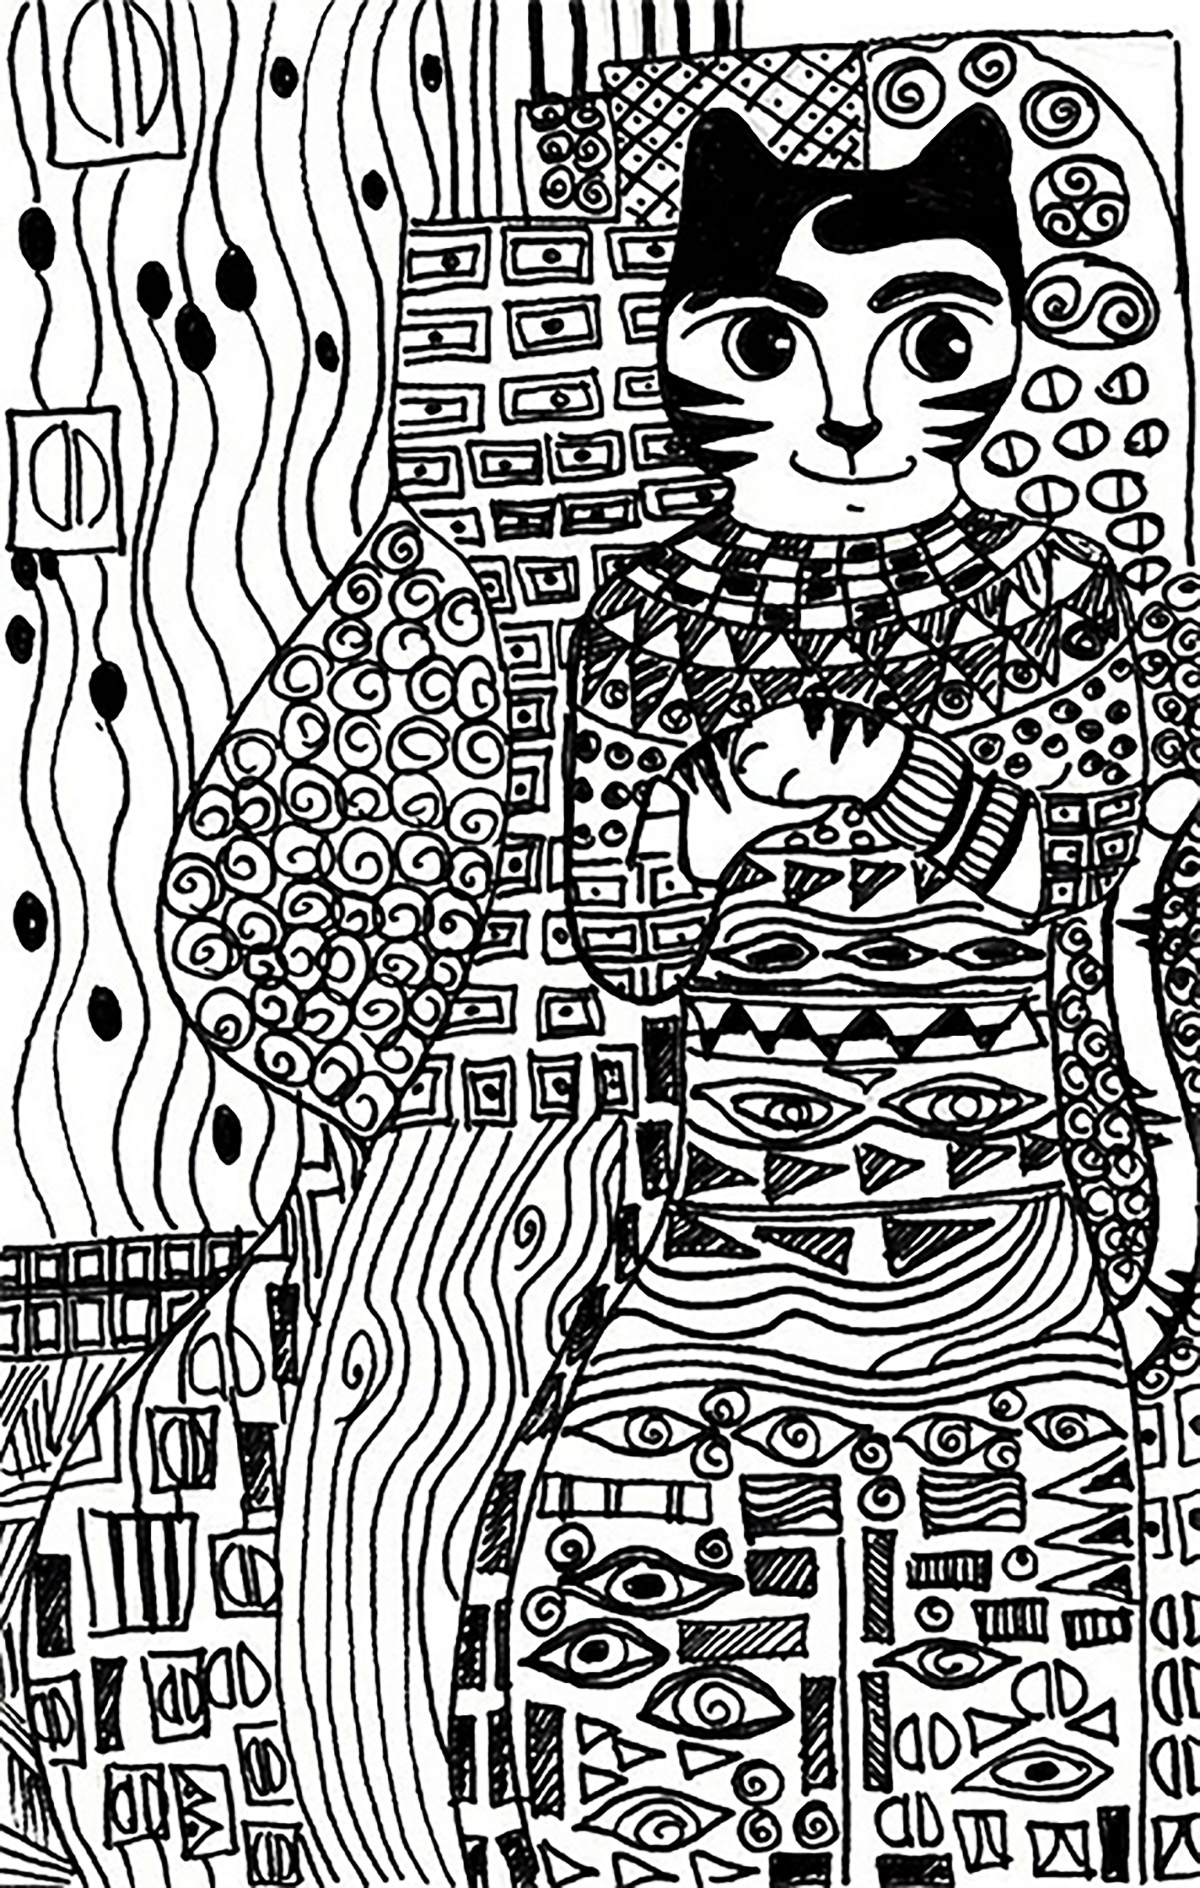 Cats coloring page to print and color for free : Klimt cat